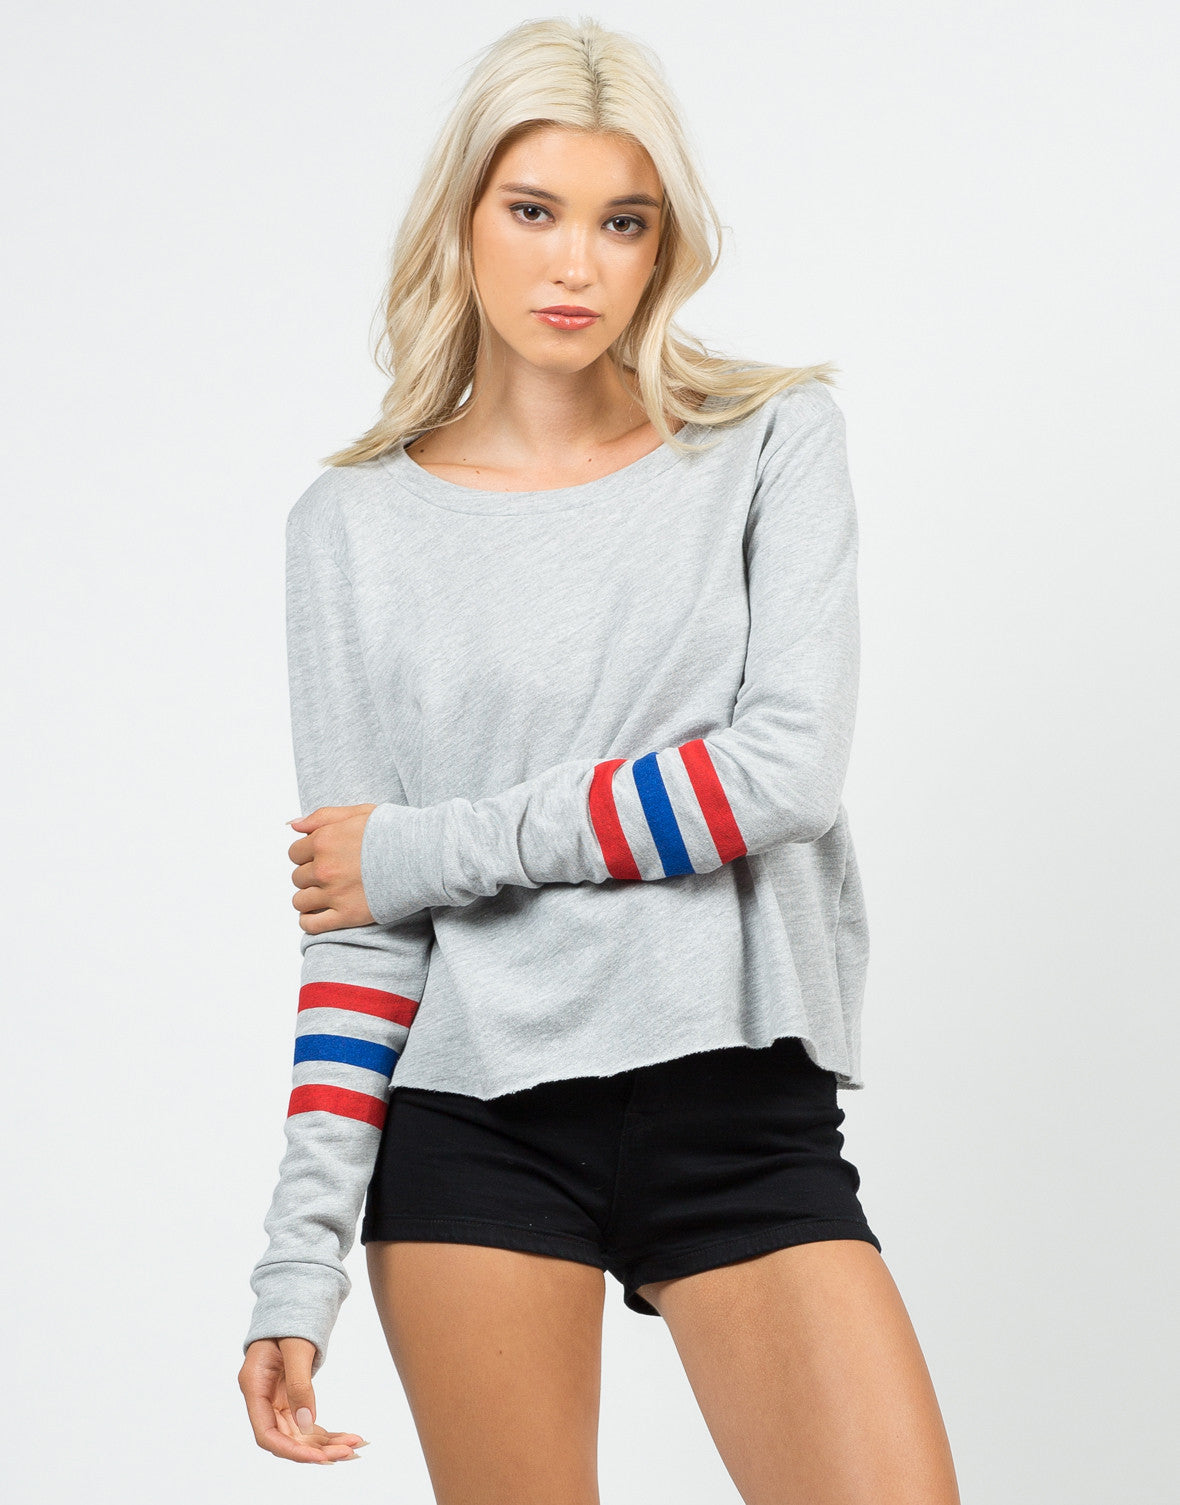 Front View of Varsity Sweater Top